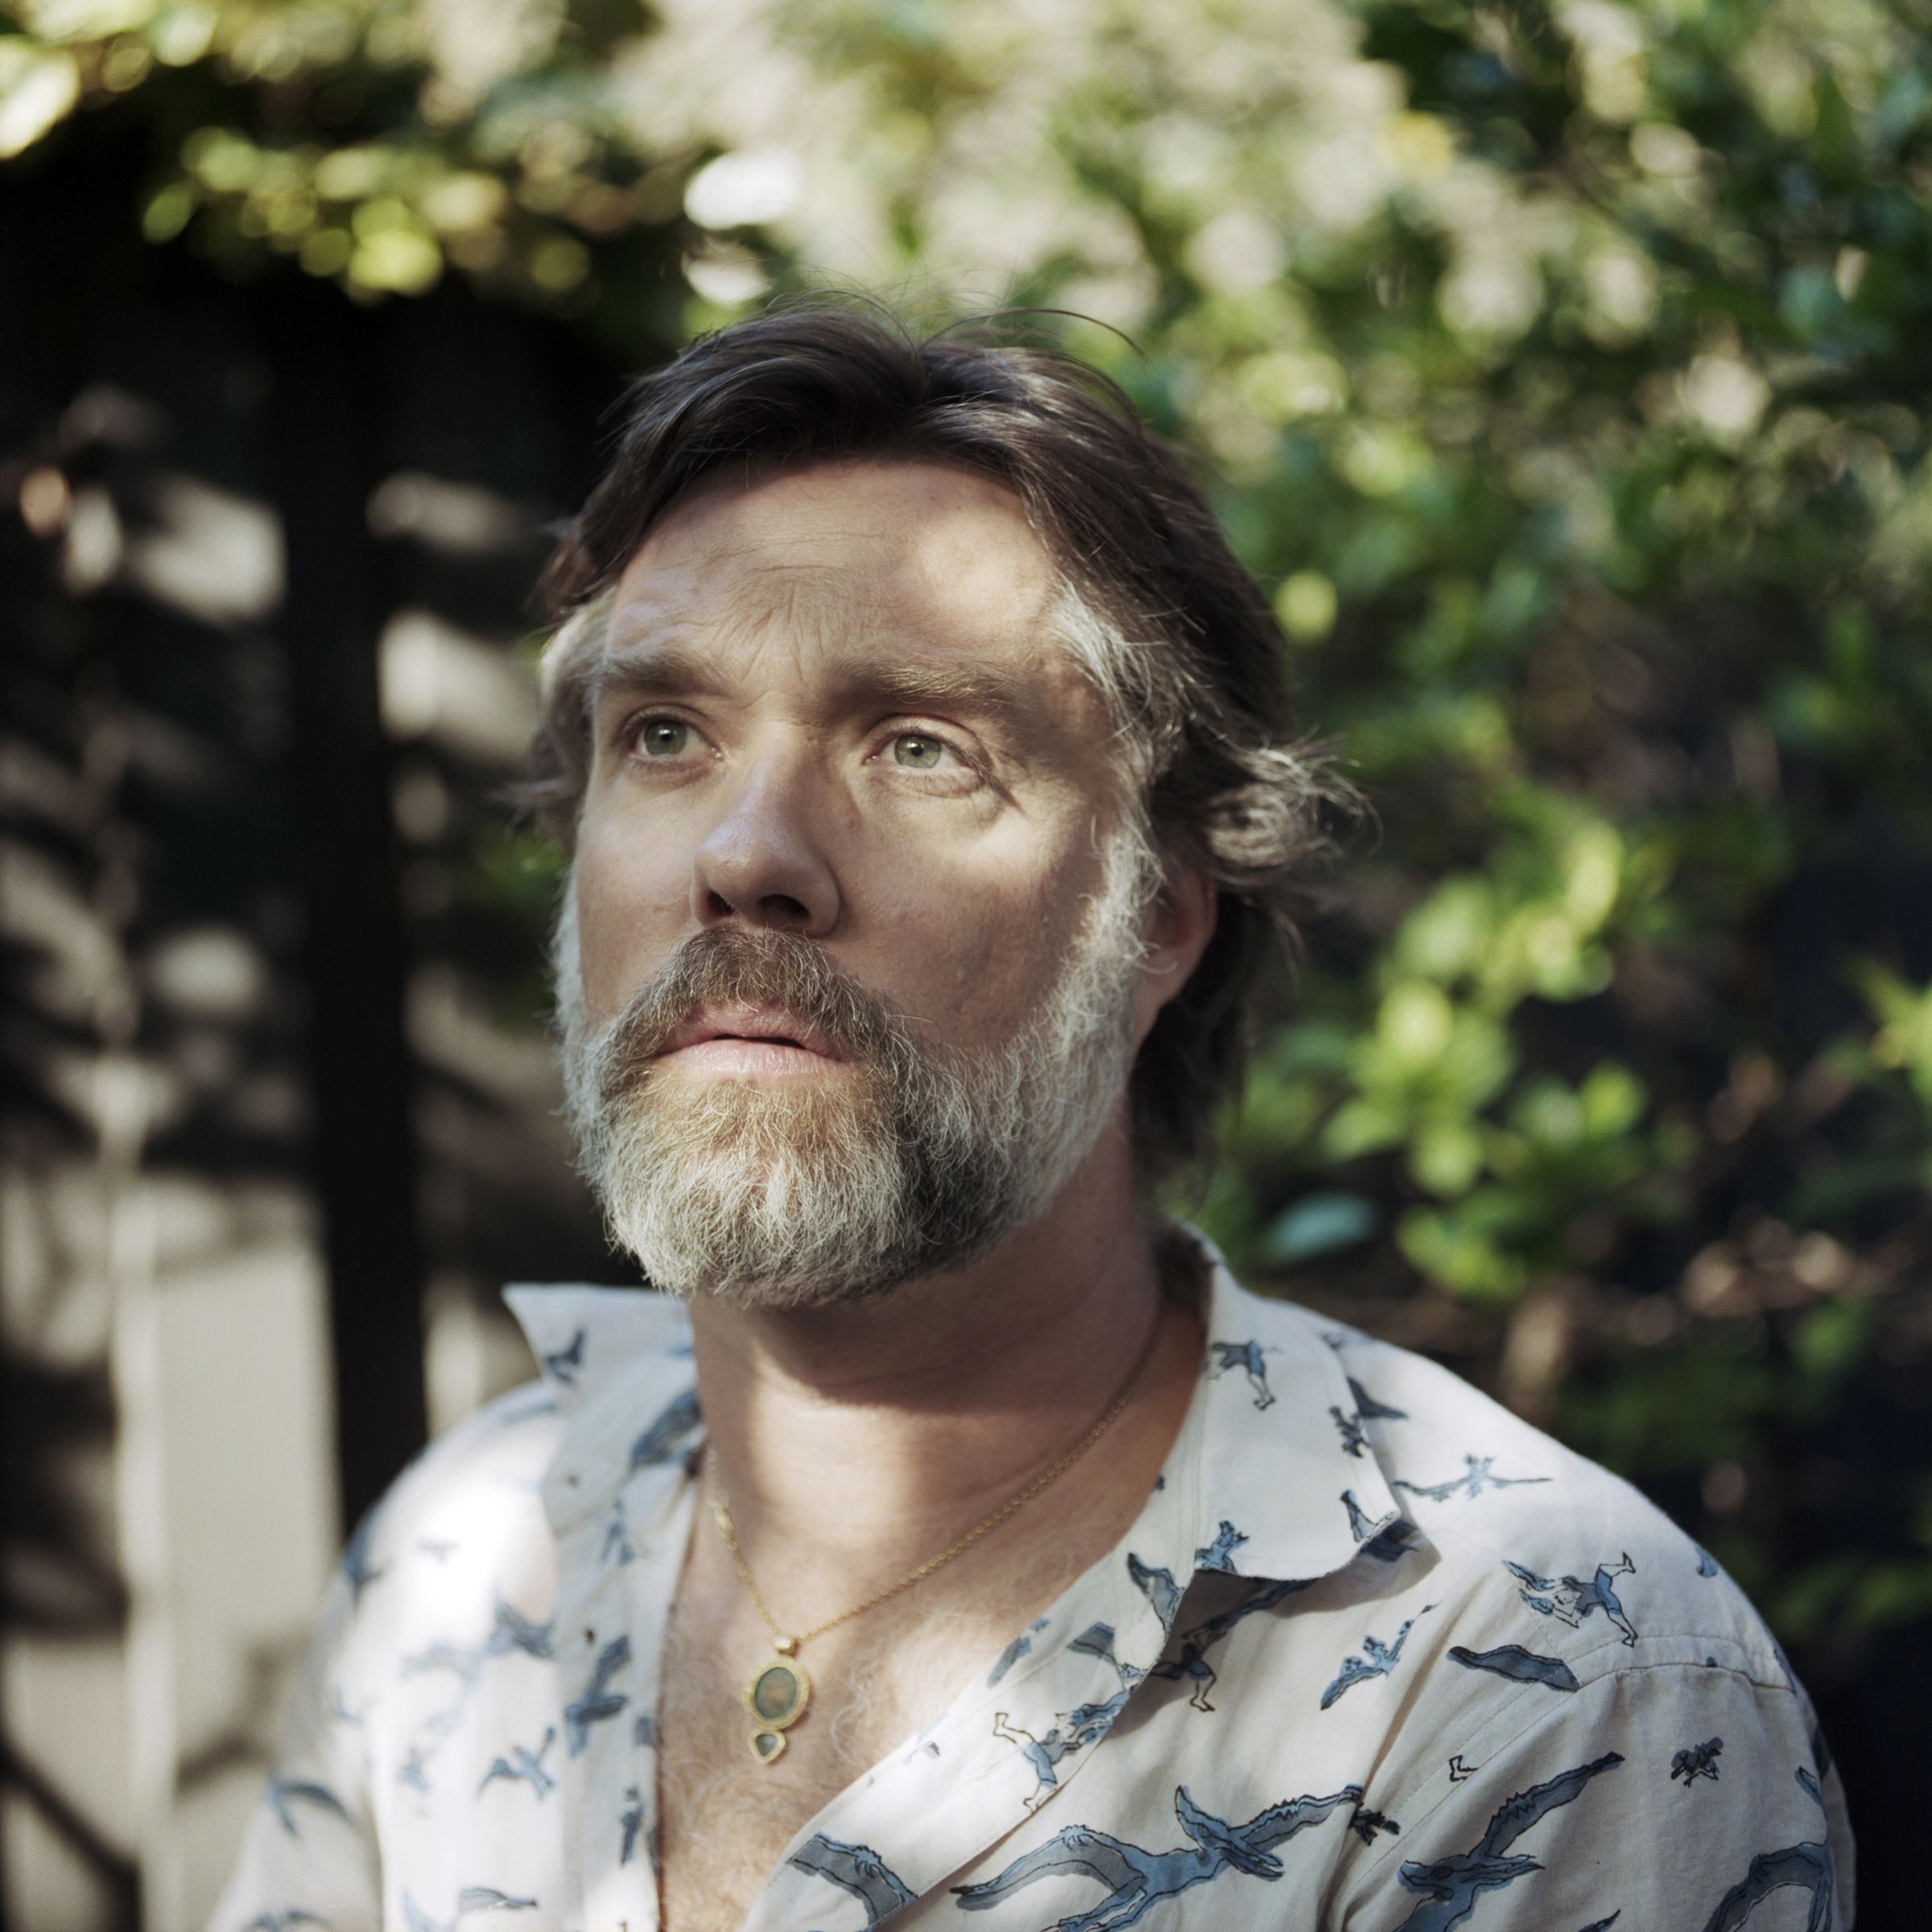 Rufus Wainwright, seen here at his home in Los Angeles, has a new album called